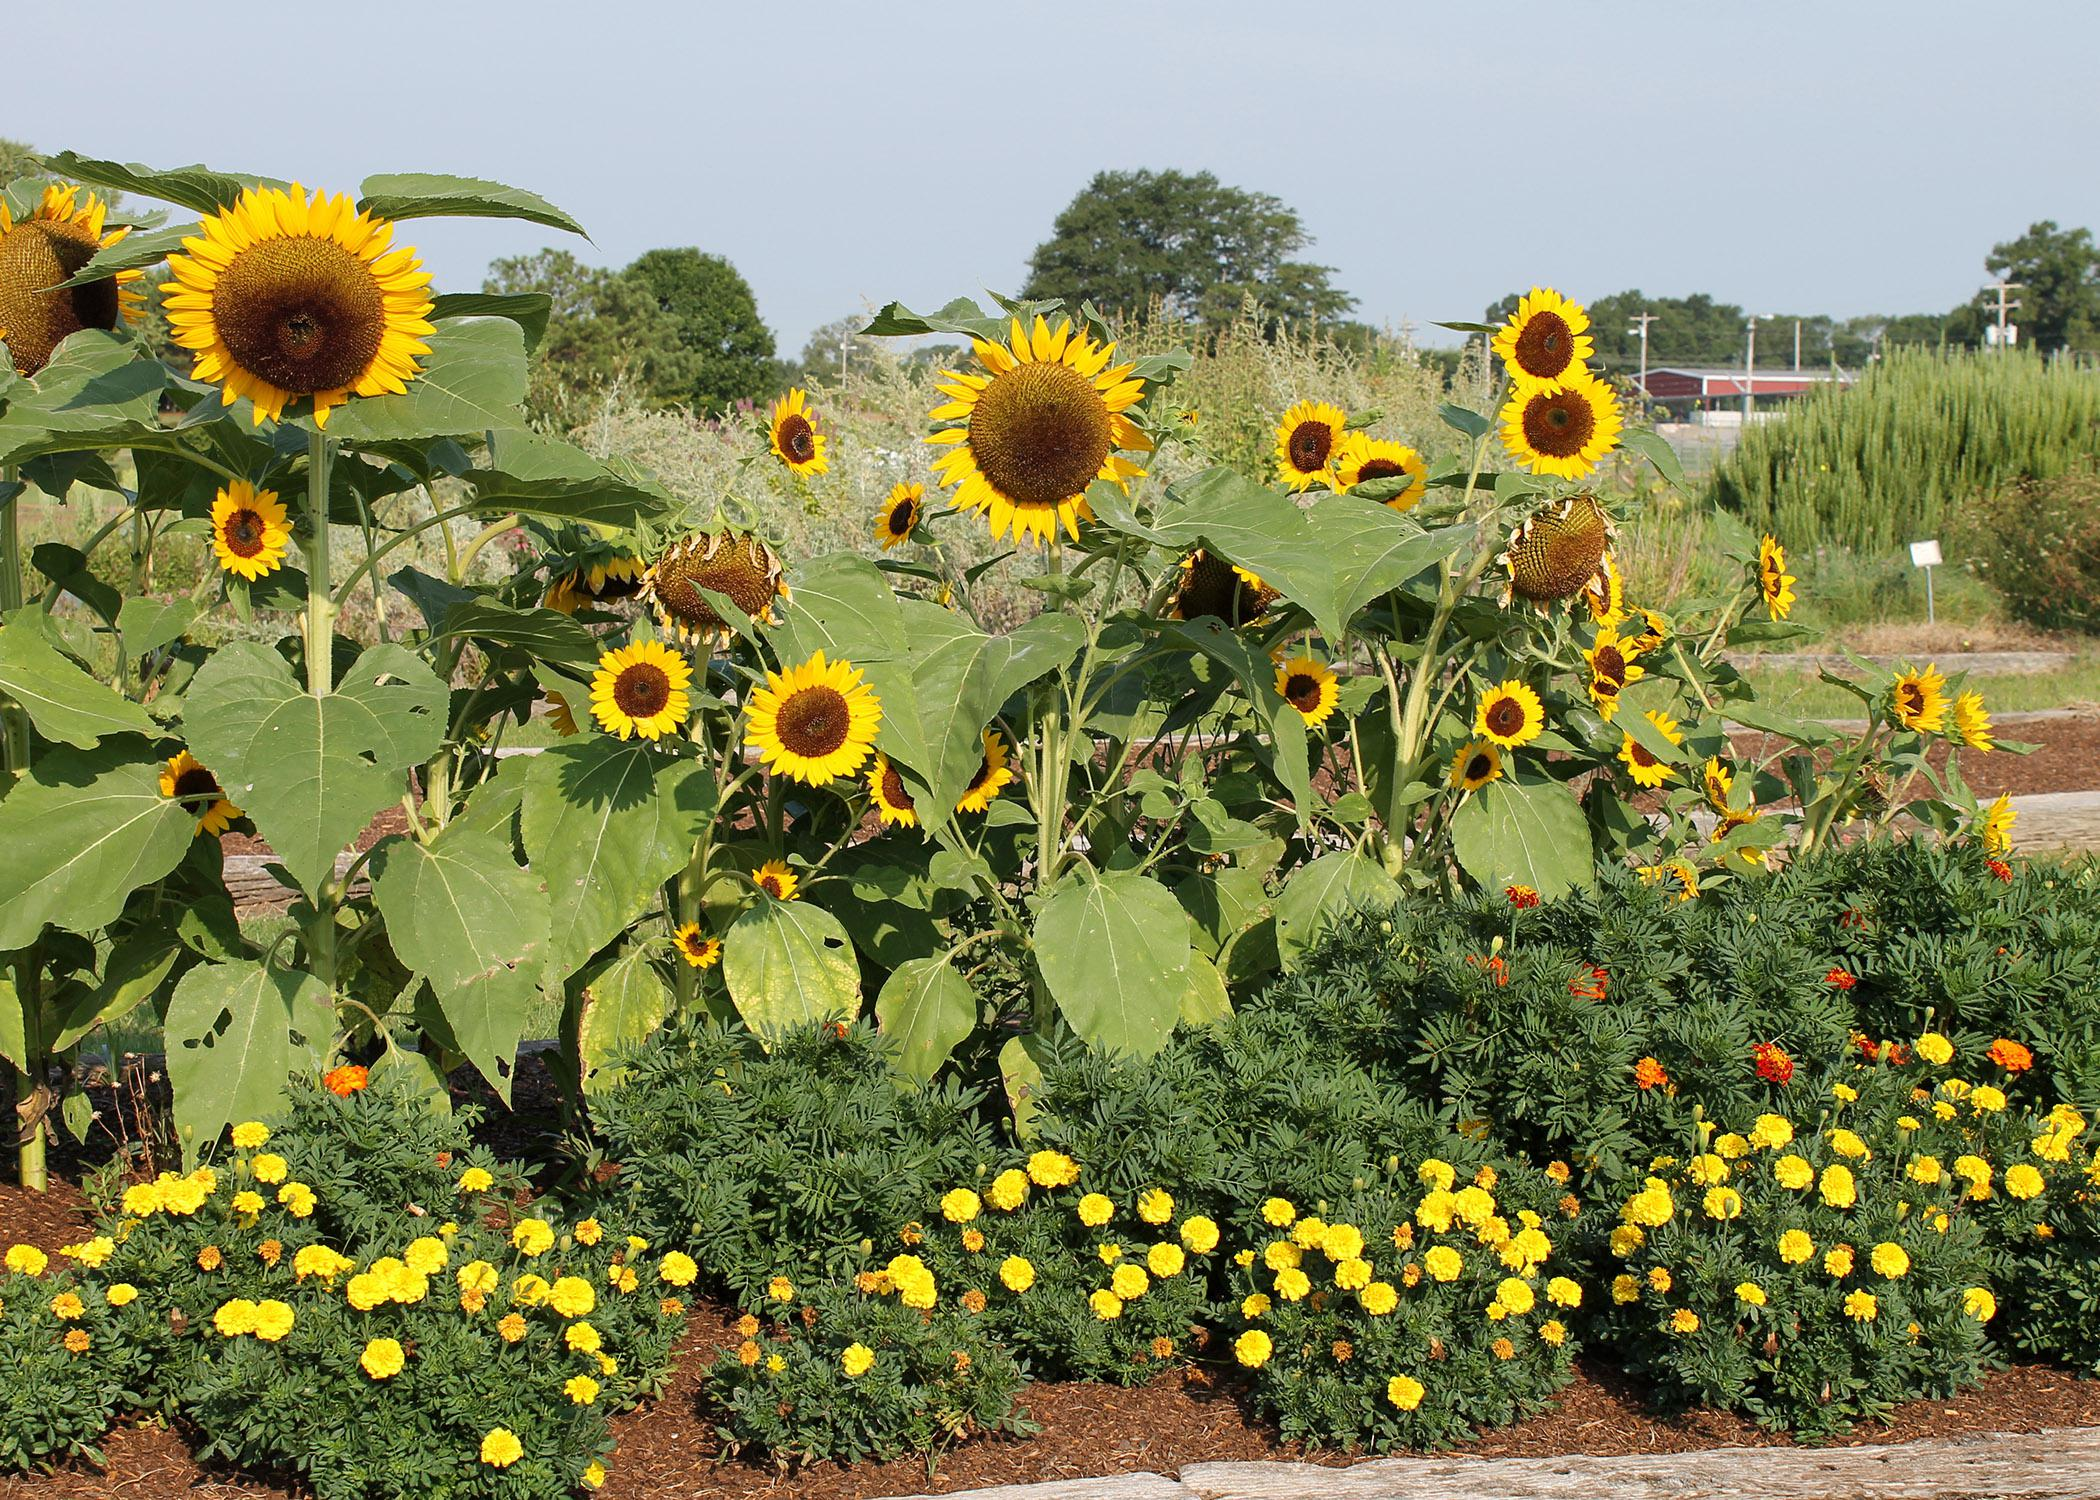 Mississippi State University horticulture experts will lead educational seminars, answer gardening questions, and offer walking and wagon tours of the gardens at the annual fall flower and vegetable tour at the North Mississippi Research and Extension Center in Verona on Sept. 20, 2014. (File Photo)